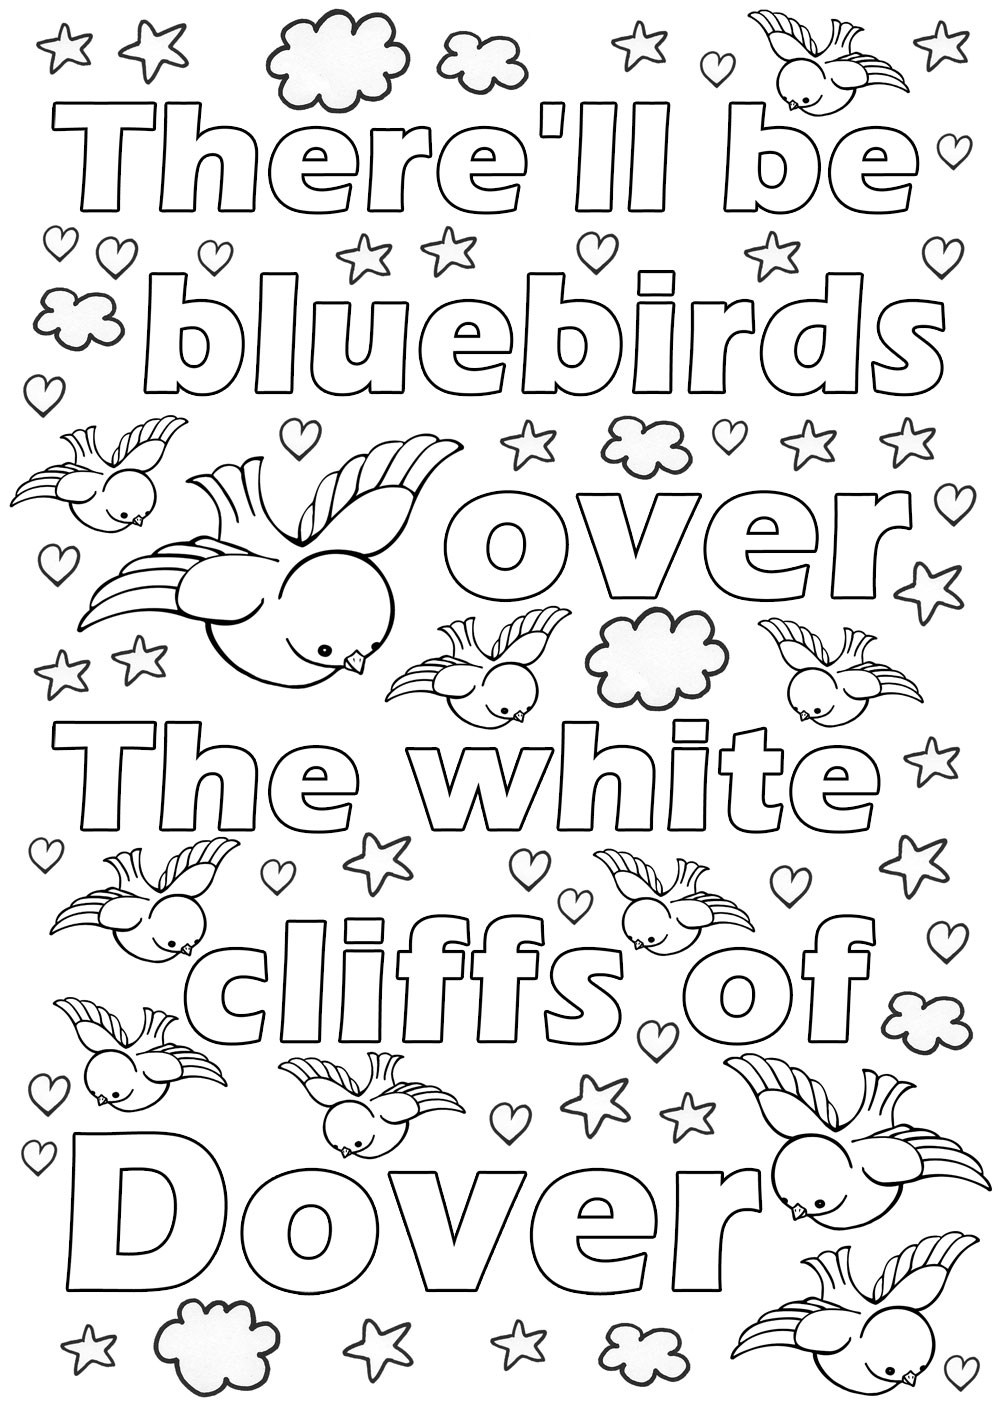 Kids colouring page to print for VE Day - There'll be bluebirds over the white Cliffs of Dover